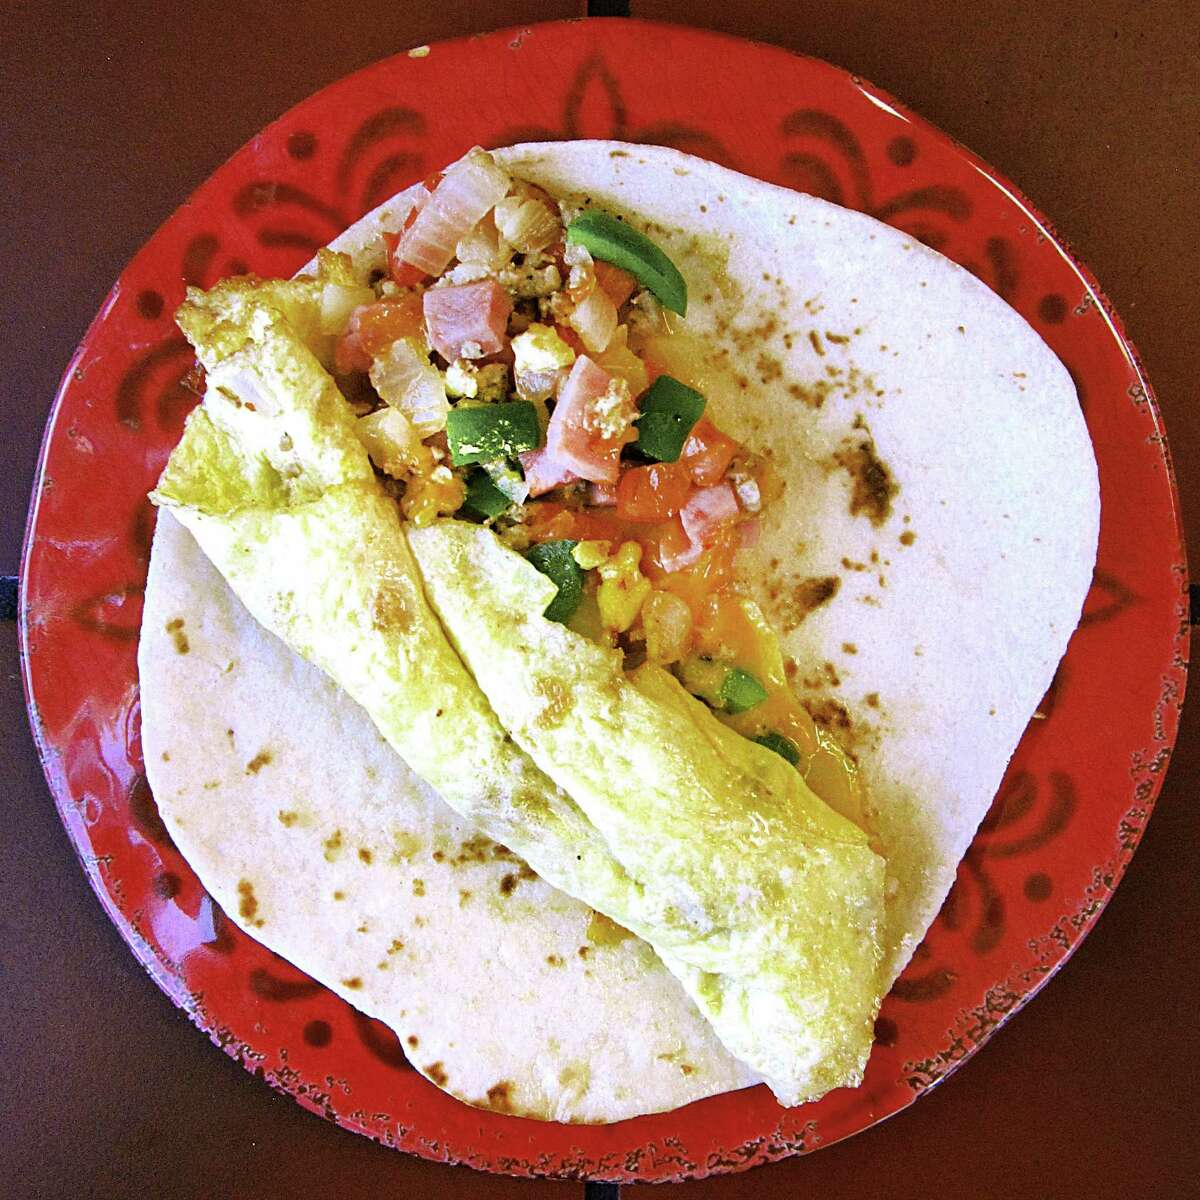 Omelet breakfast taco with eggs, ham, sausage, peppers, onions, tomatoes and cheese on a handmade flour tortilla from Ruthie's Mexican Restaurant.